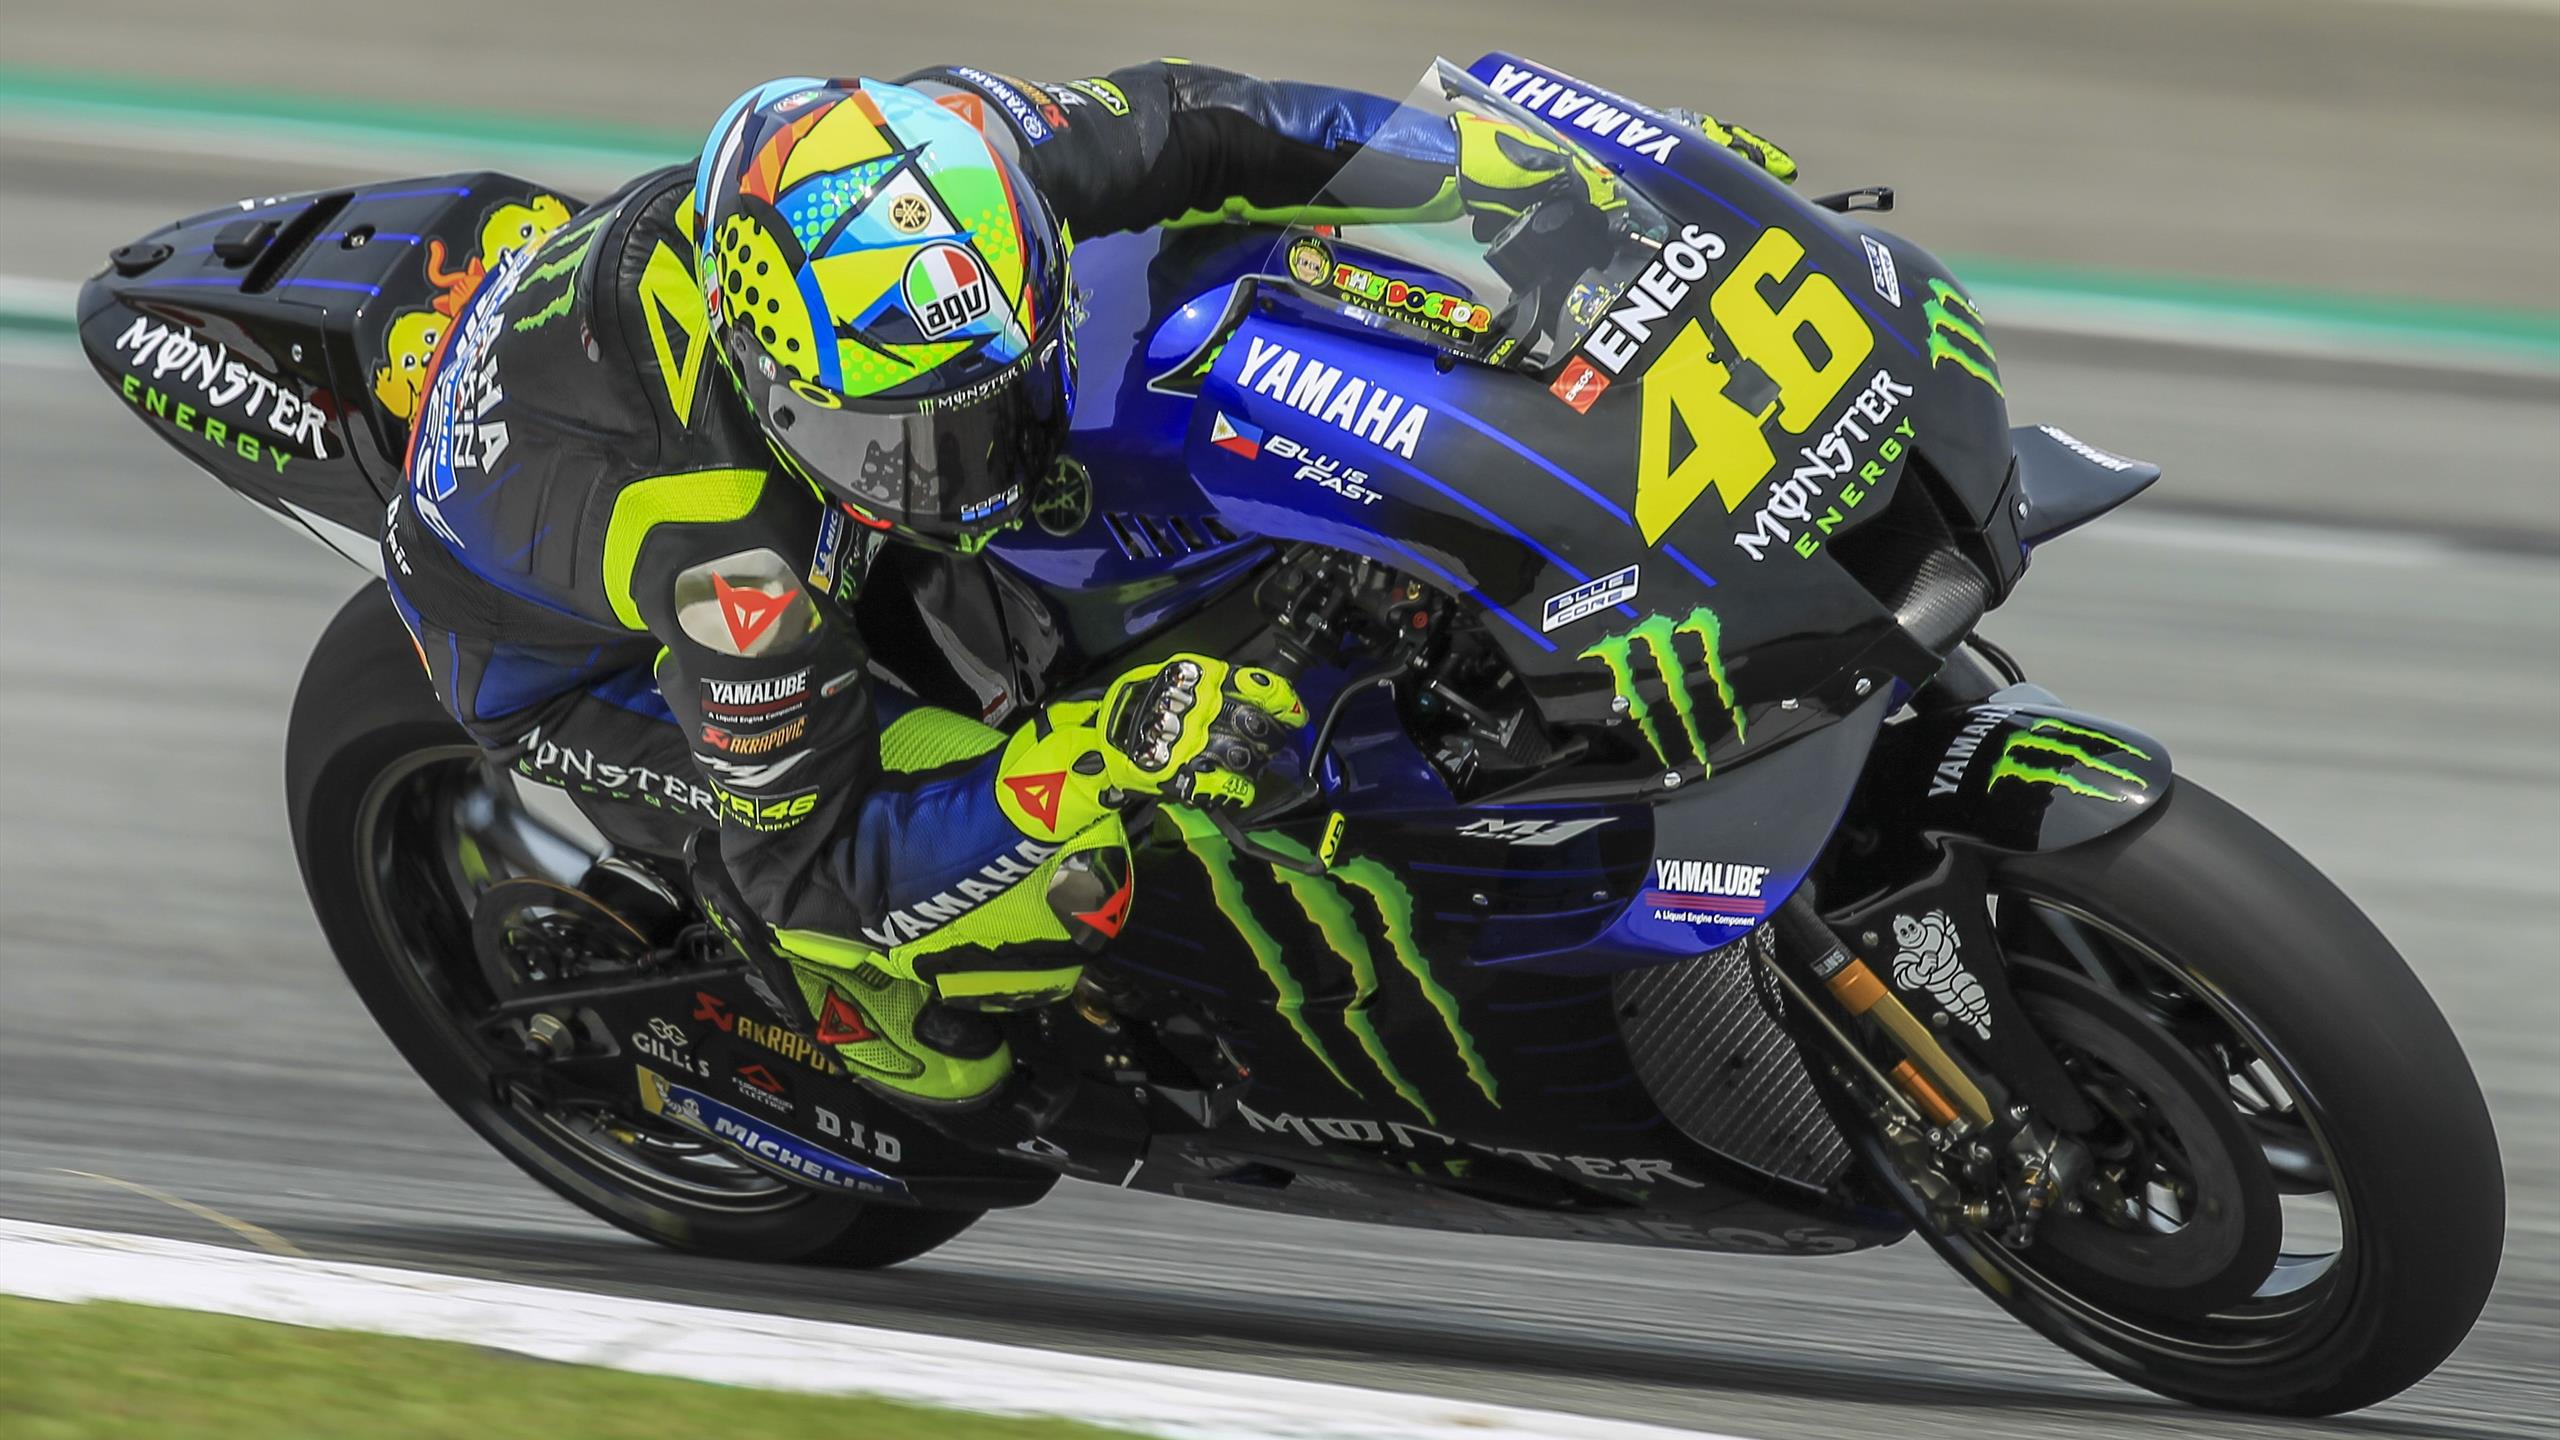 motogp news valentino rossi expects to decide future before season starts eurosport motogp news valentino rossi expects